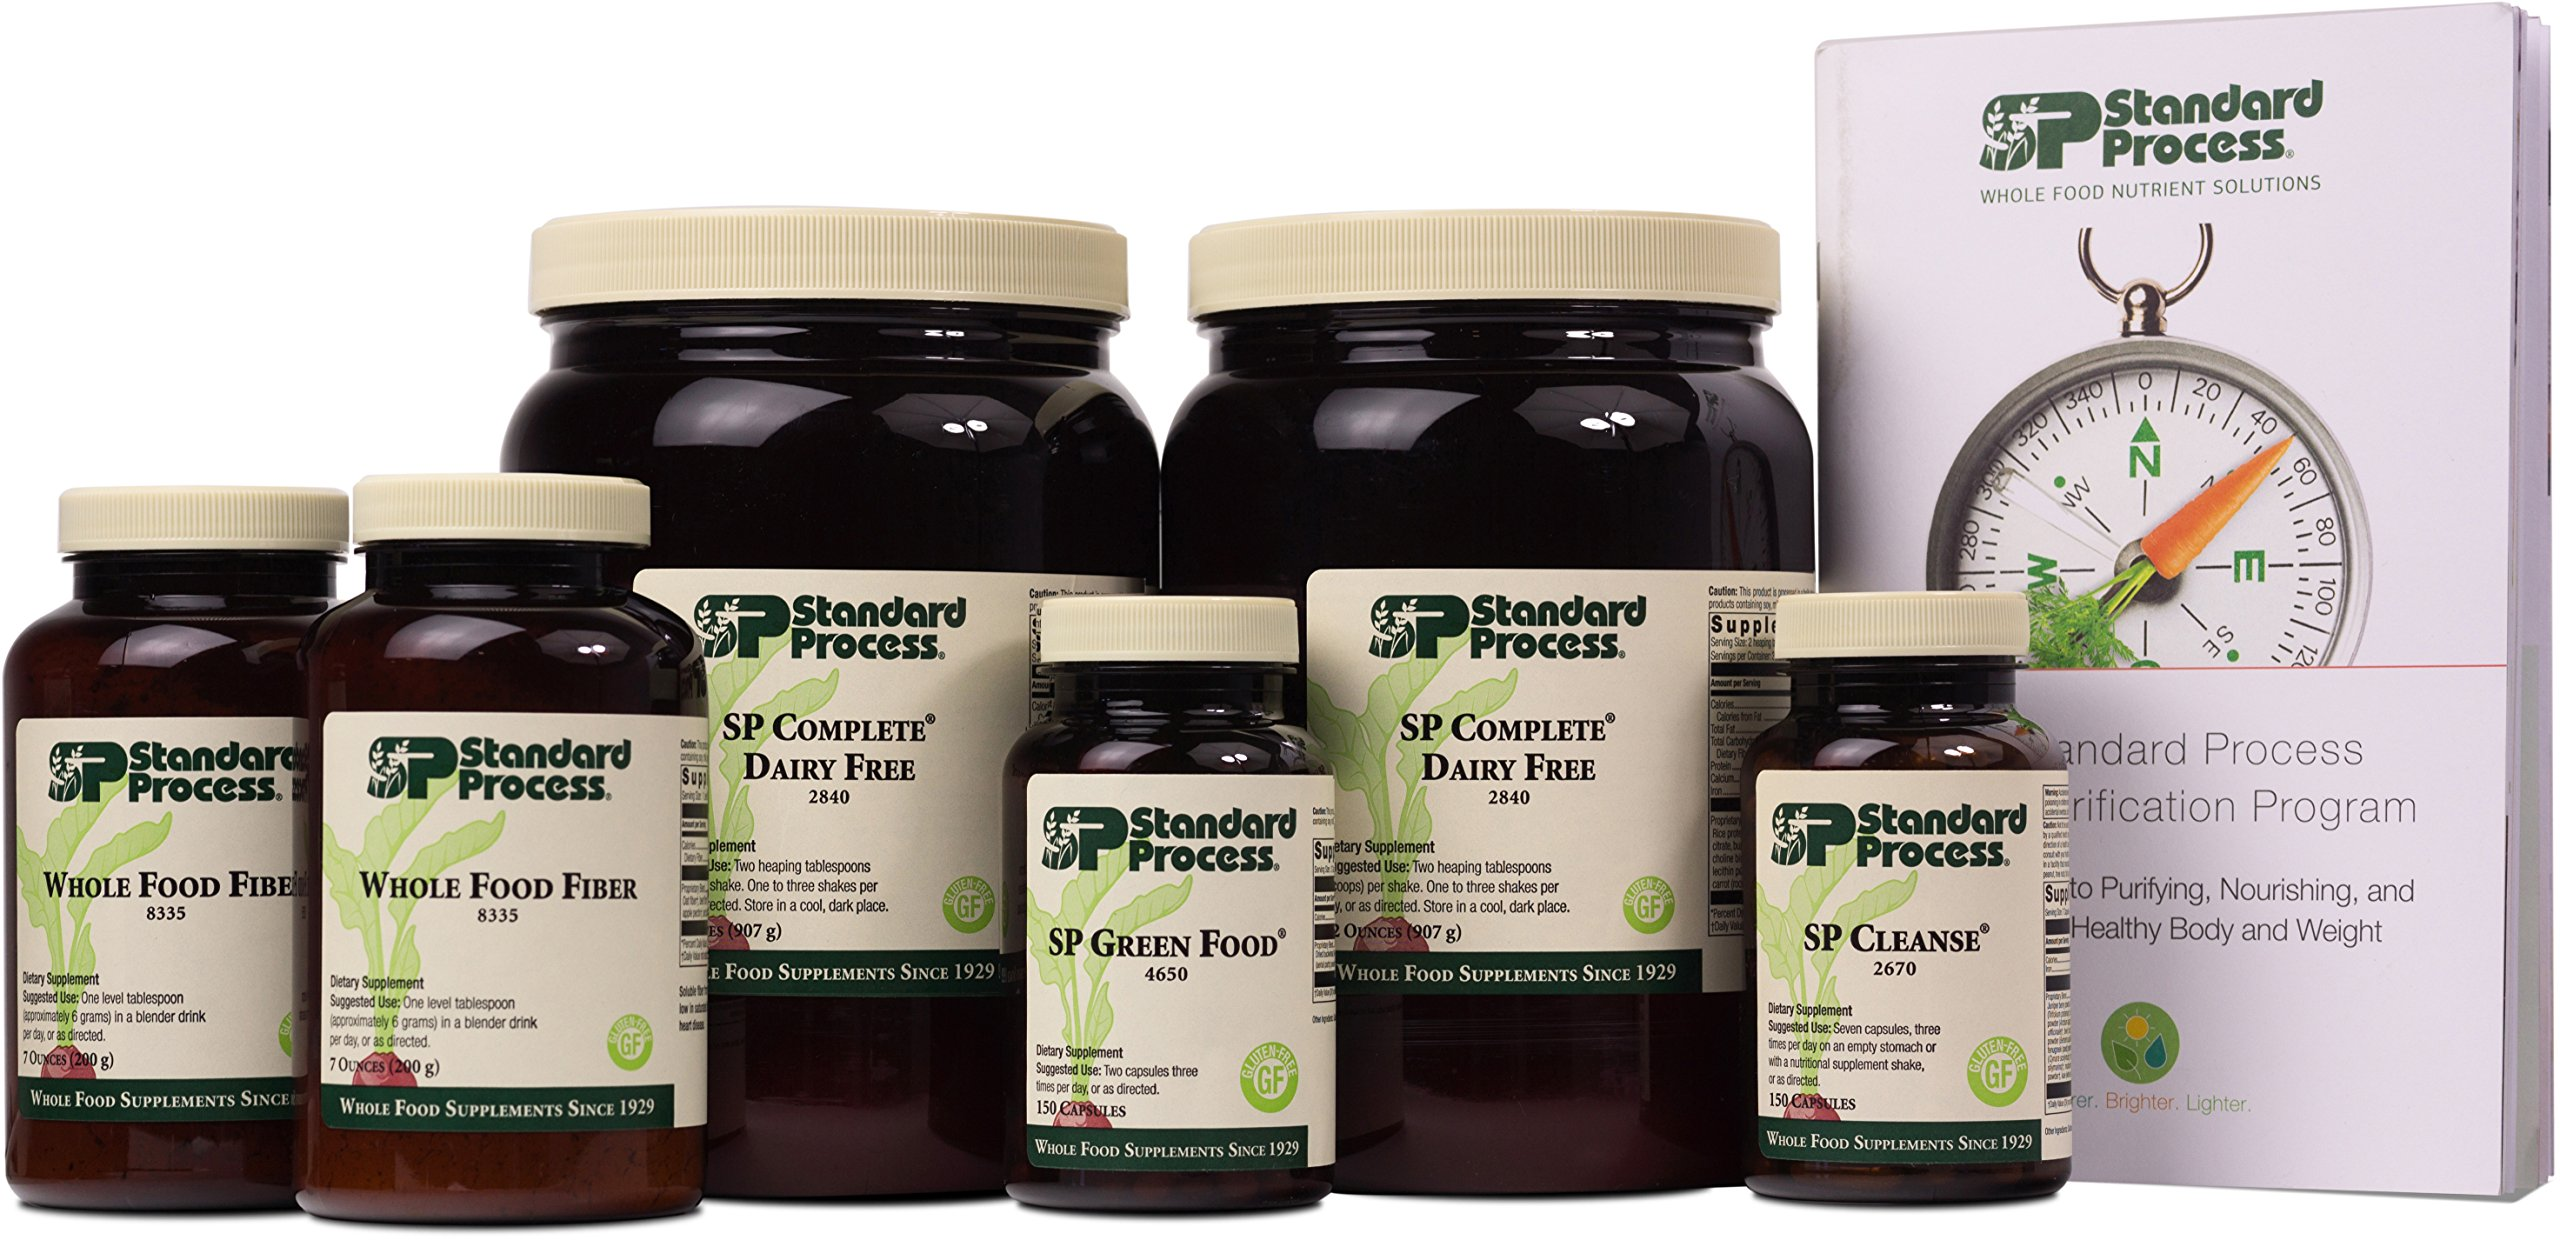 Standard Process - Purification Kit with SP Complete Dairy Free and Whole Food Fiber